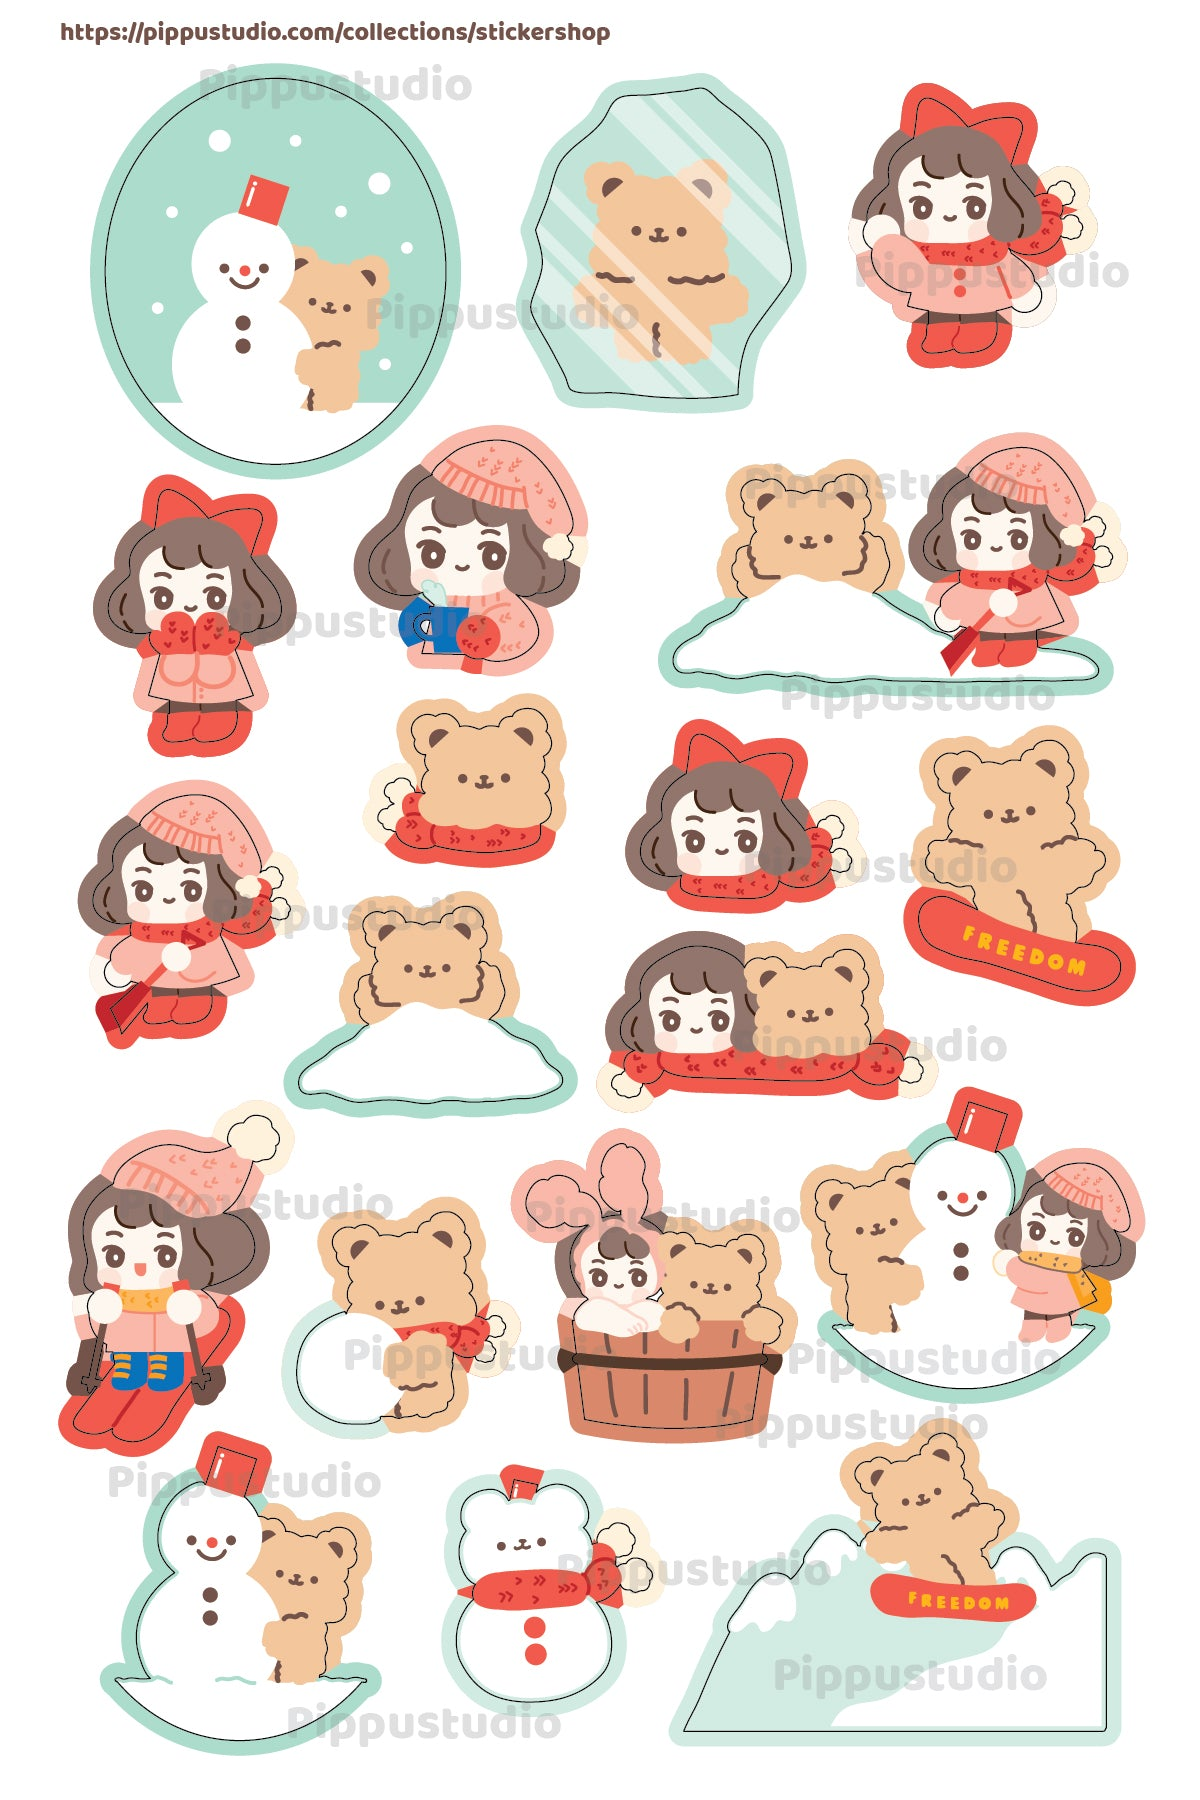 A43-Winter sticker sheet